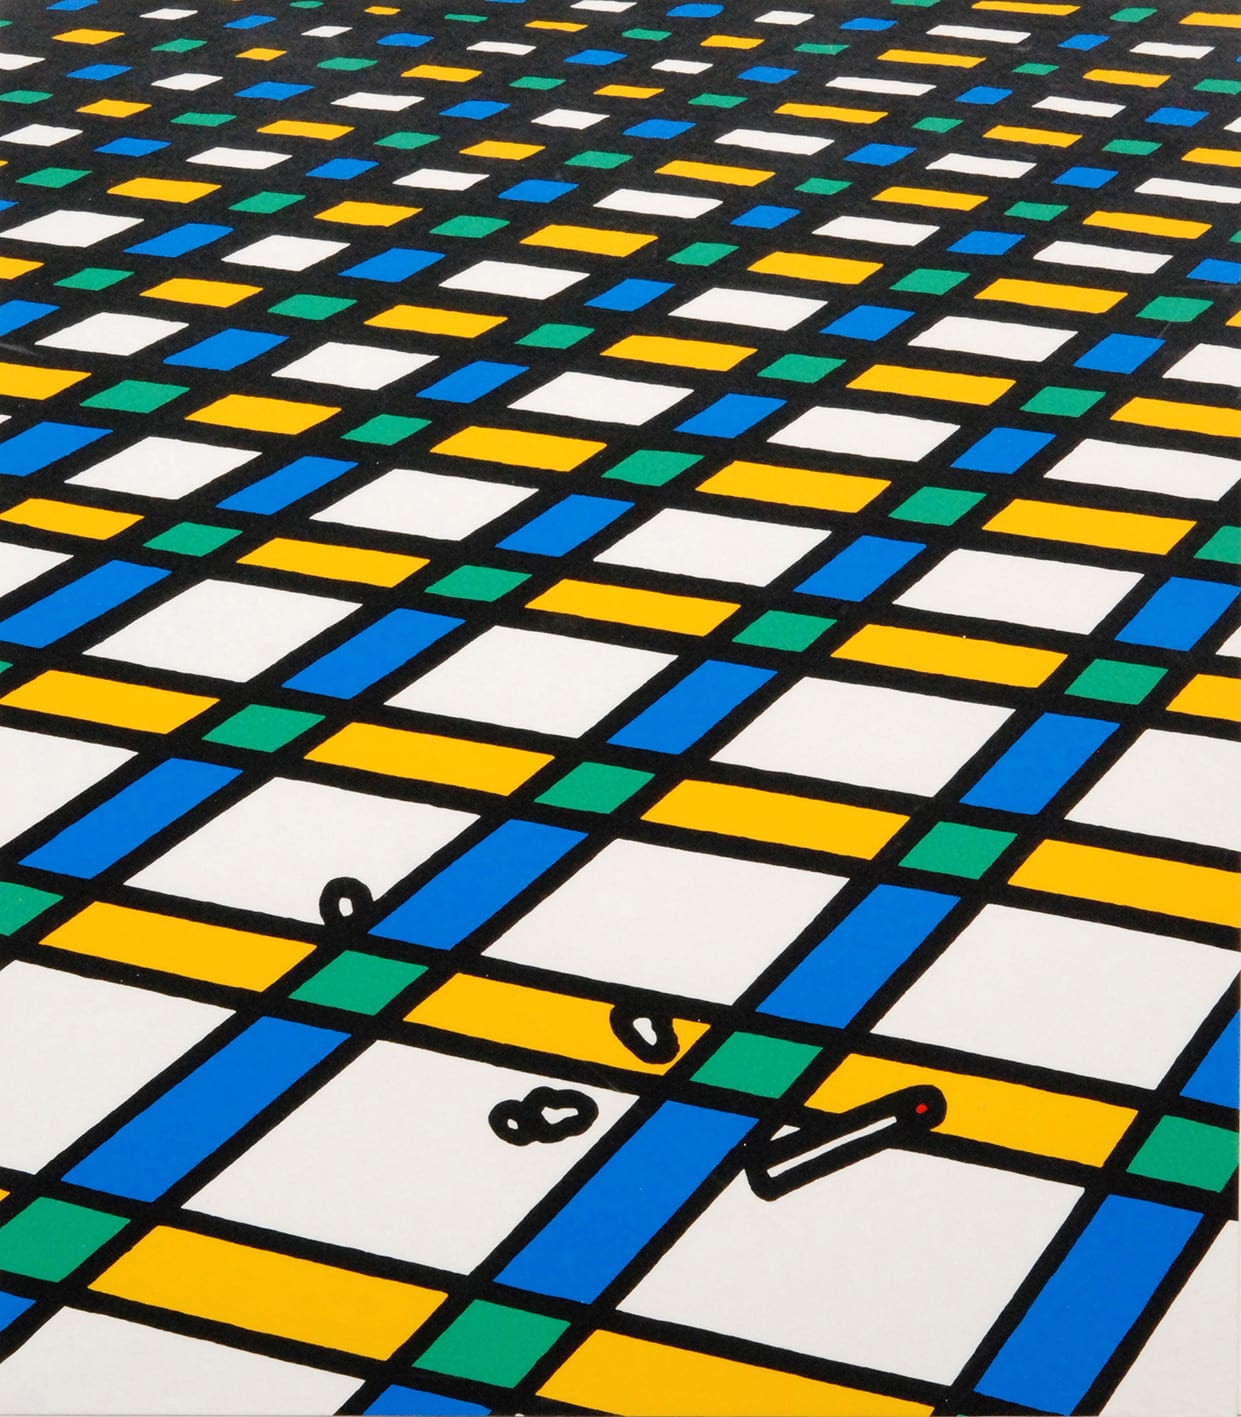 """<span class=""""link fancybox-details-link""""><a href=""""/artists/399-patrick-caulfield-cbe-ra/works/7380-patrick-caulfield-cbe-ra-and-i-am-alone-in-my-house-from-1973/"""">View Detail Page</a></span><div class=""""artist""""><strong>Patrick Caulfield CBE RA</strong></div> 1936-2005 <div class=""""title""""><em>And I am alone in my house from 'Some Poems of Jules Laforgue' [Cristea 38]</em>, 1973</div> <div class=""""signed_and_dated"""">signed and numbered from the edition of 200 in pencil on verso</div> <div class=""""medium"""">silkscreen print in colours on Neobond synthetic paper, the sheet printed to the edges</div> <div class=""""dimensions"""">sheet size: h 40.5 x w 35.5 cm</div> <div class=""""edition_details"""">edition 5 of 200 from the 'Edition B'</div><div class=""""copyright_line"""">Copyright The Artist</div>"""